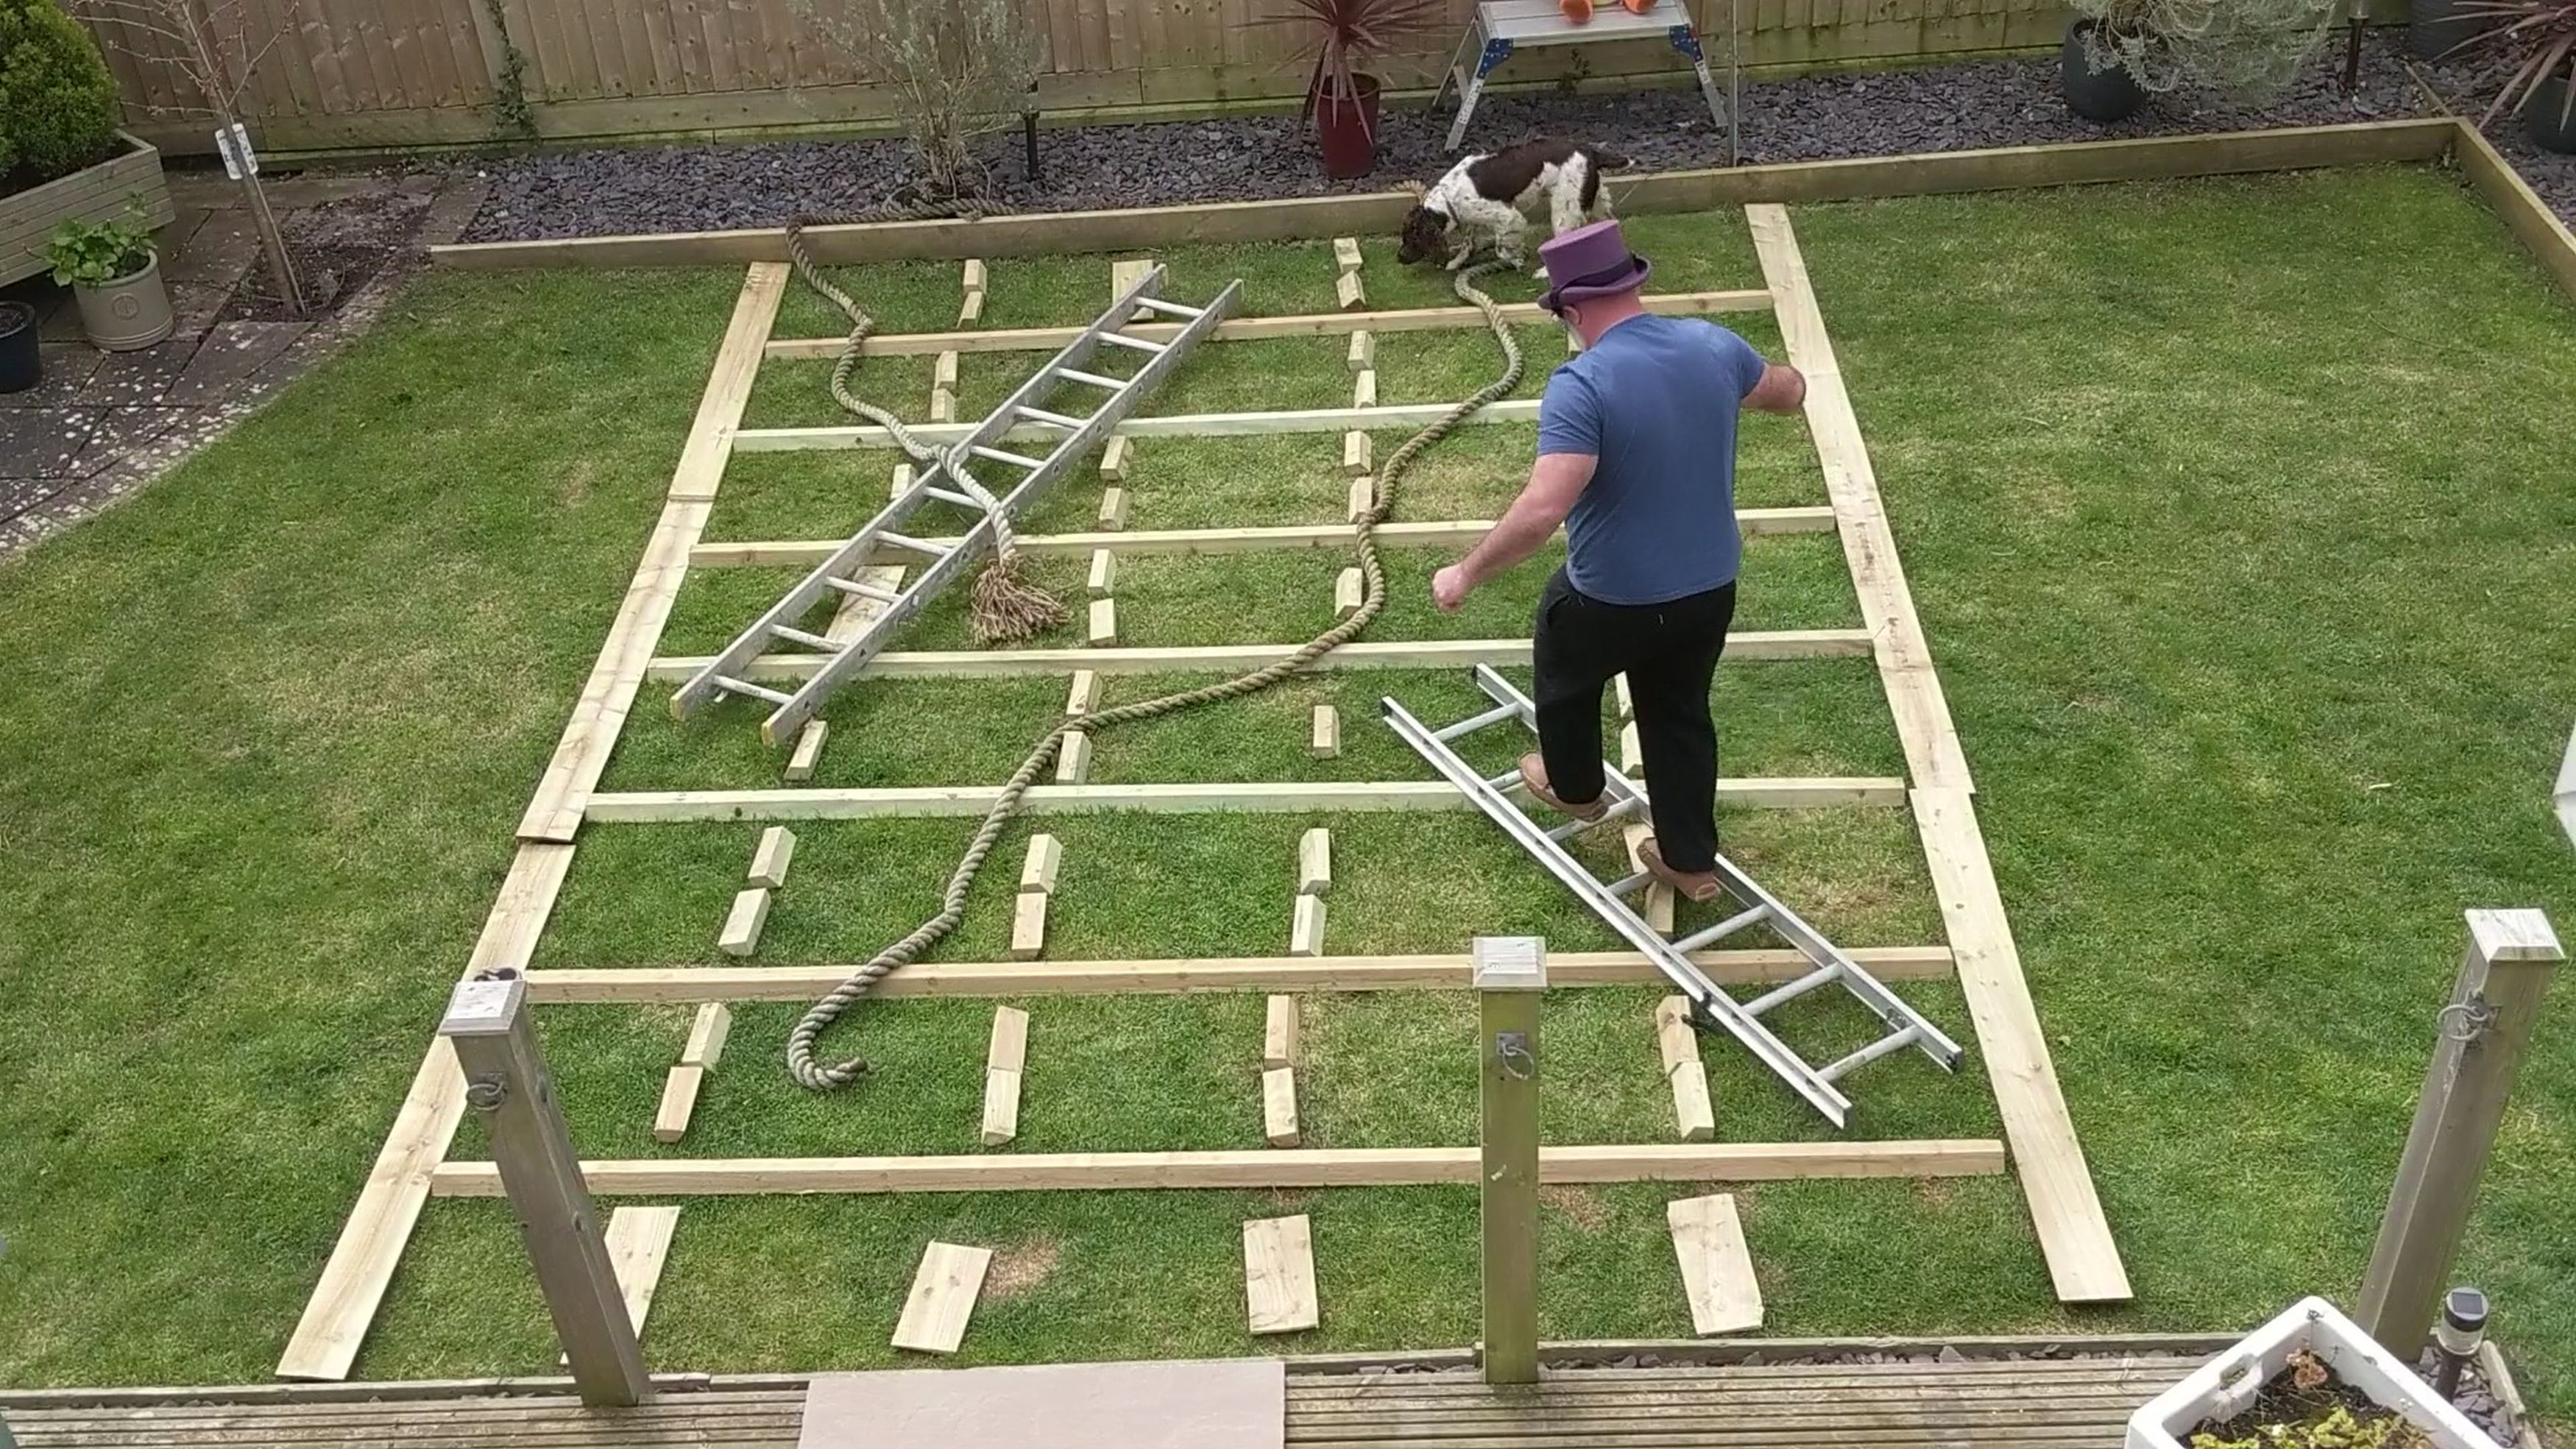 Granddad playing snakes and ladders in his back garden